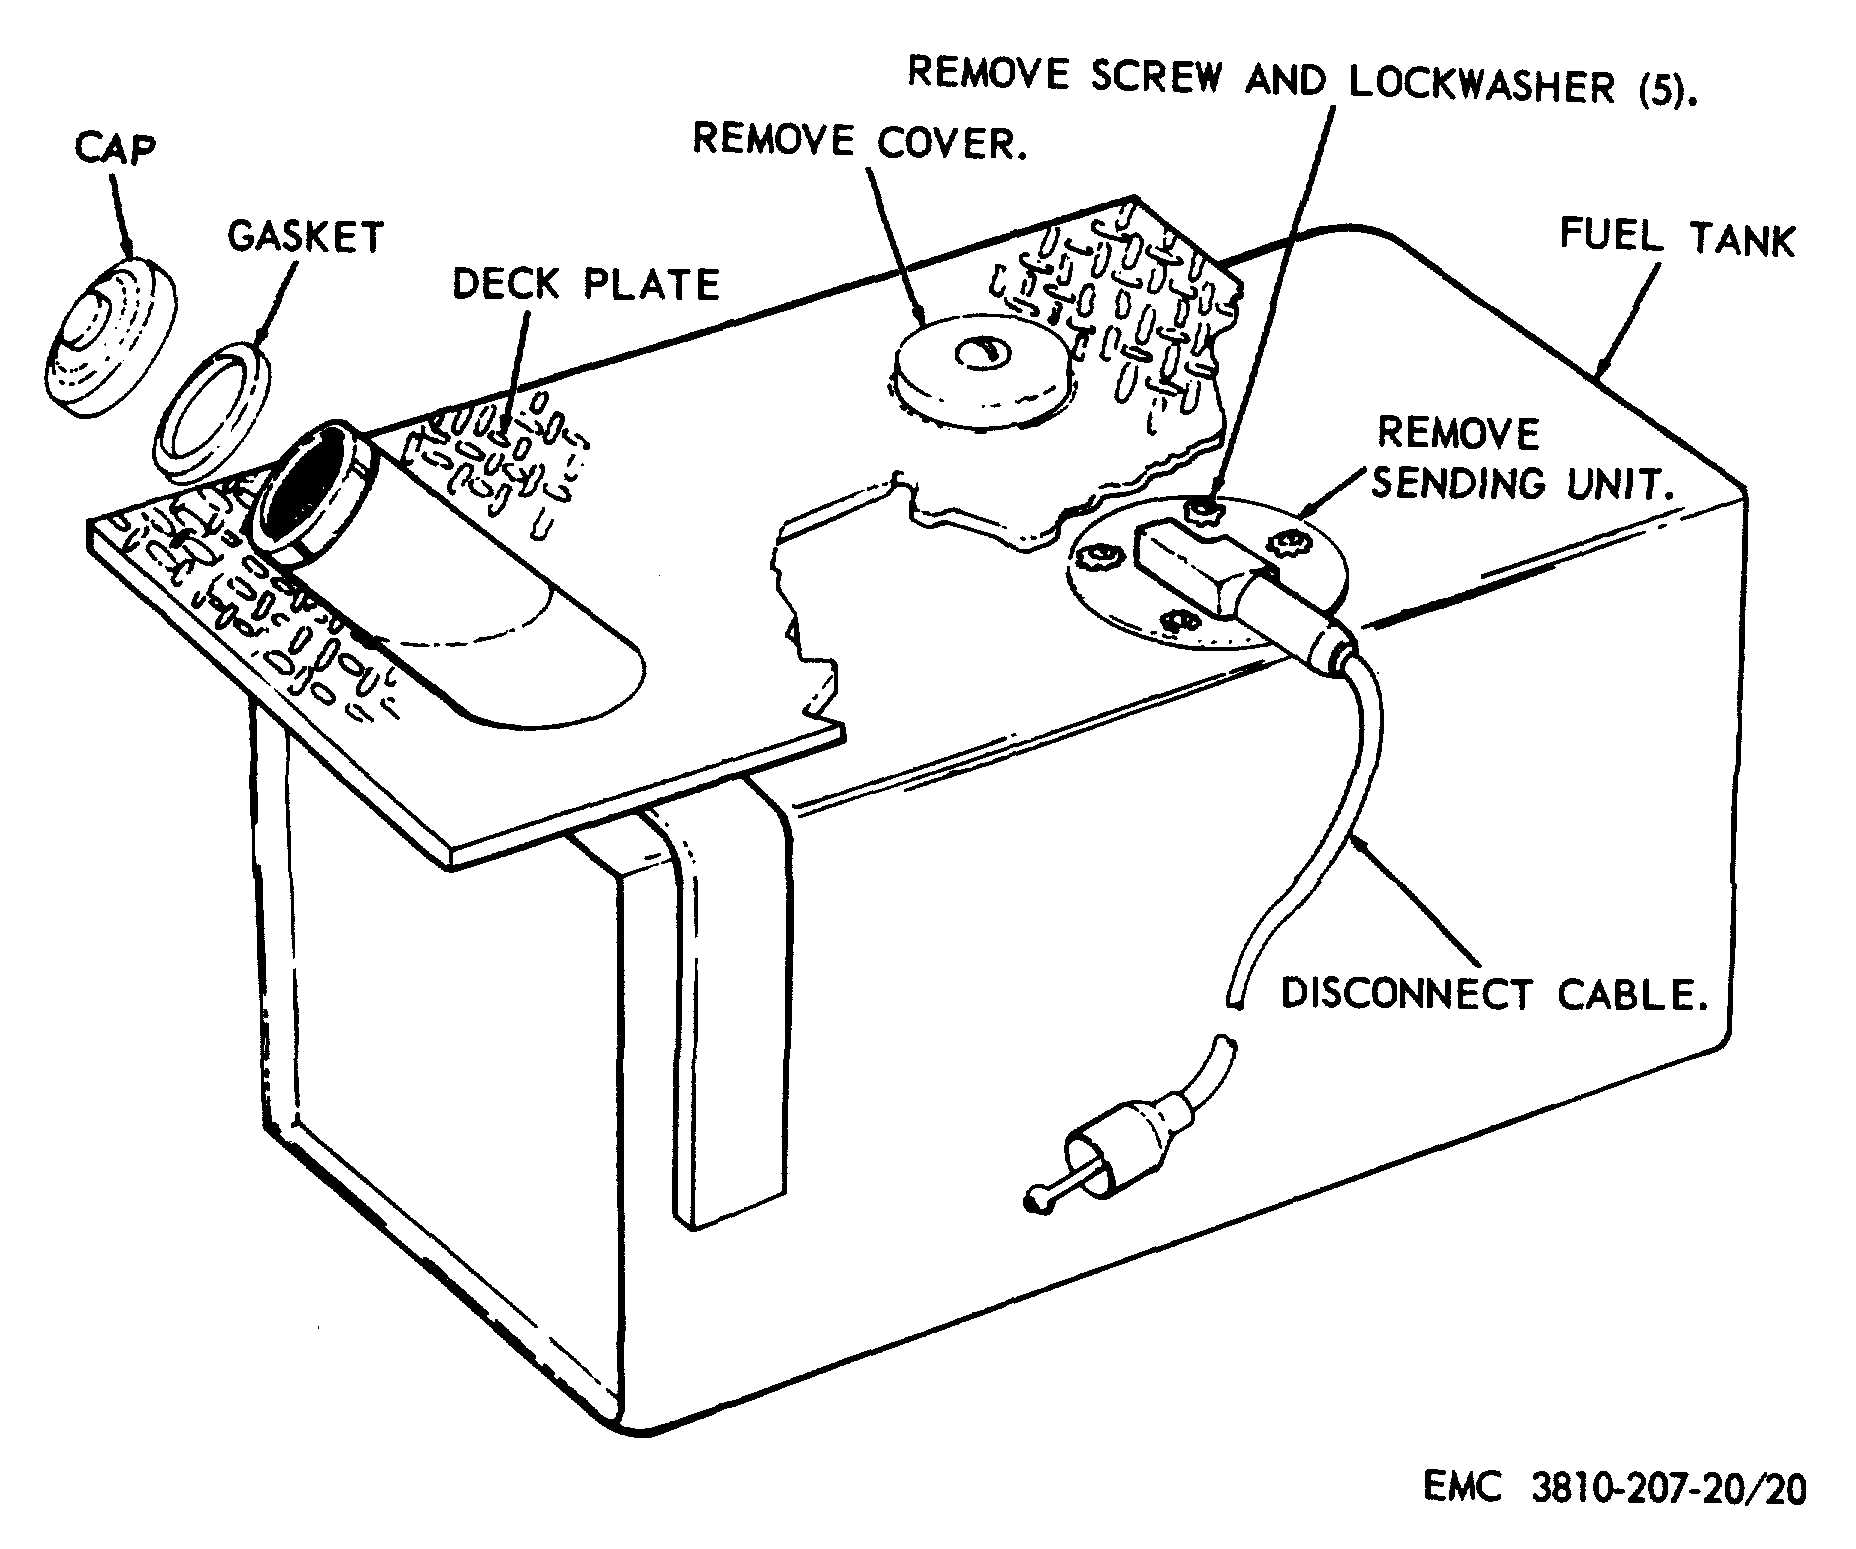 Fuel Tank Sending Unit Wiring Diagram 1972 C10 Fuel Tank